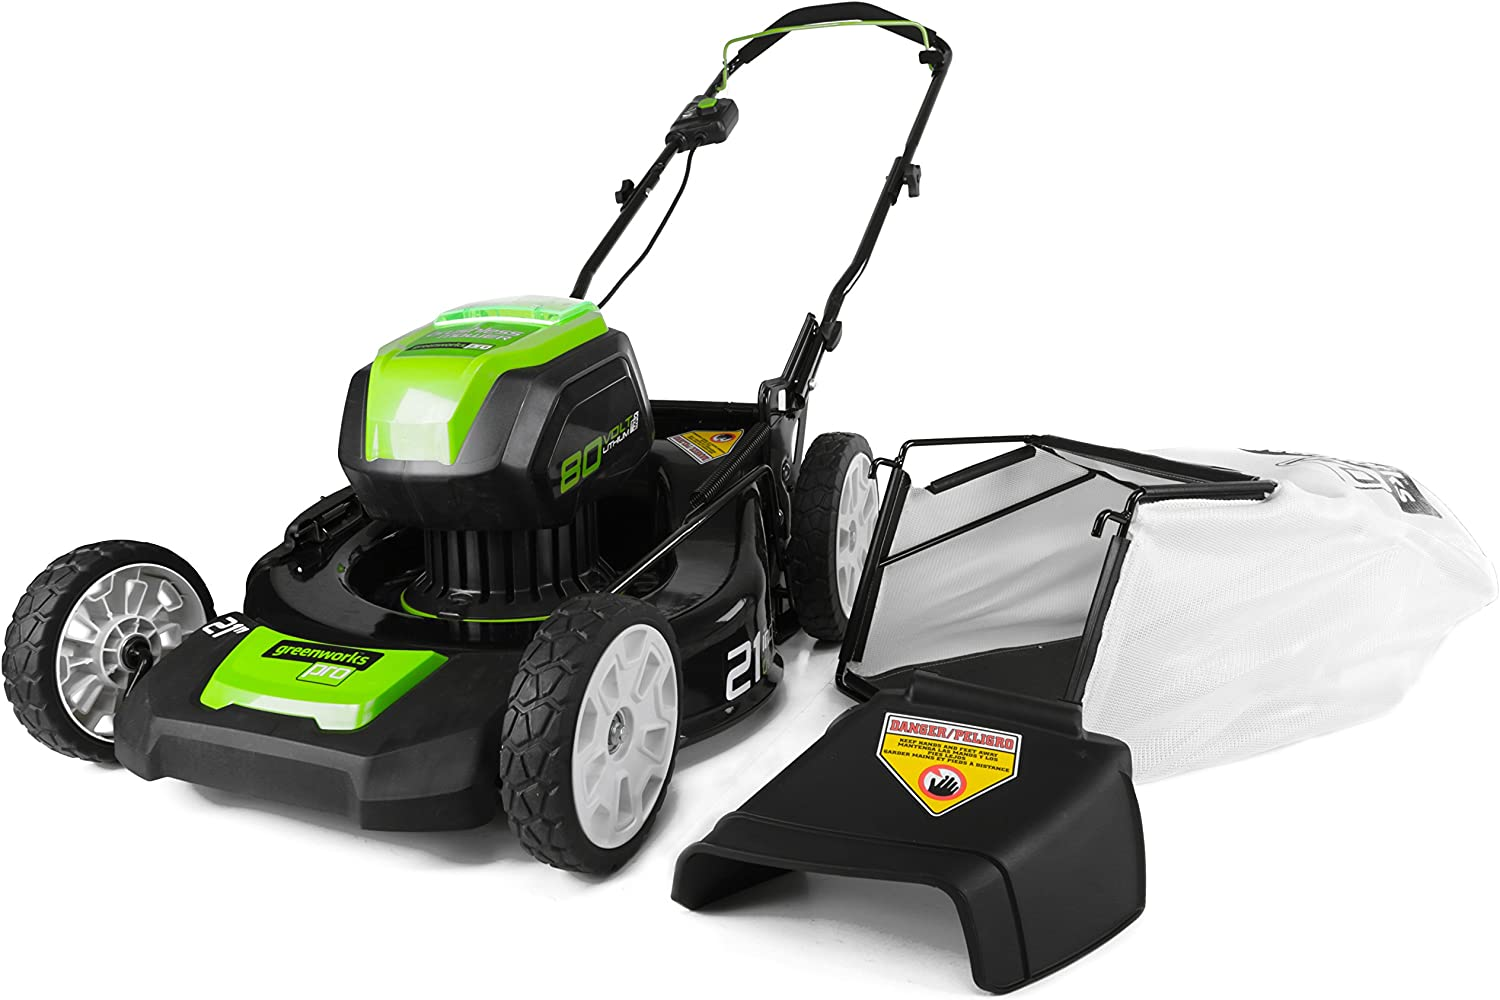 Greenworks PRO 21 Inch (Best Rated Cordless Lawn Mower for hillsides)